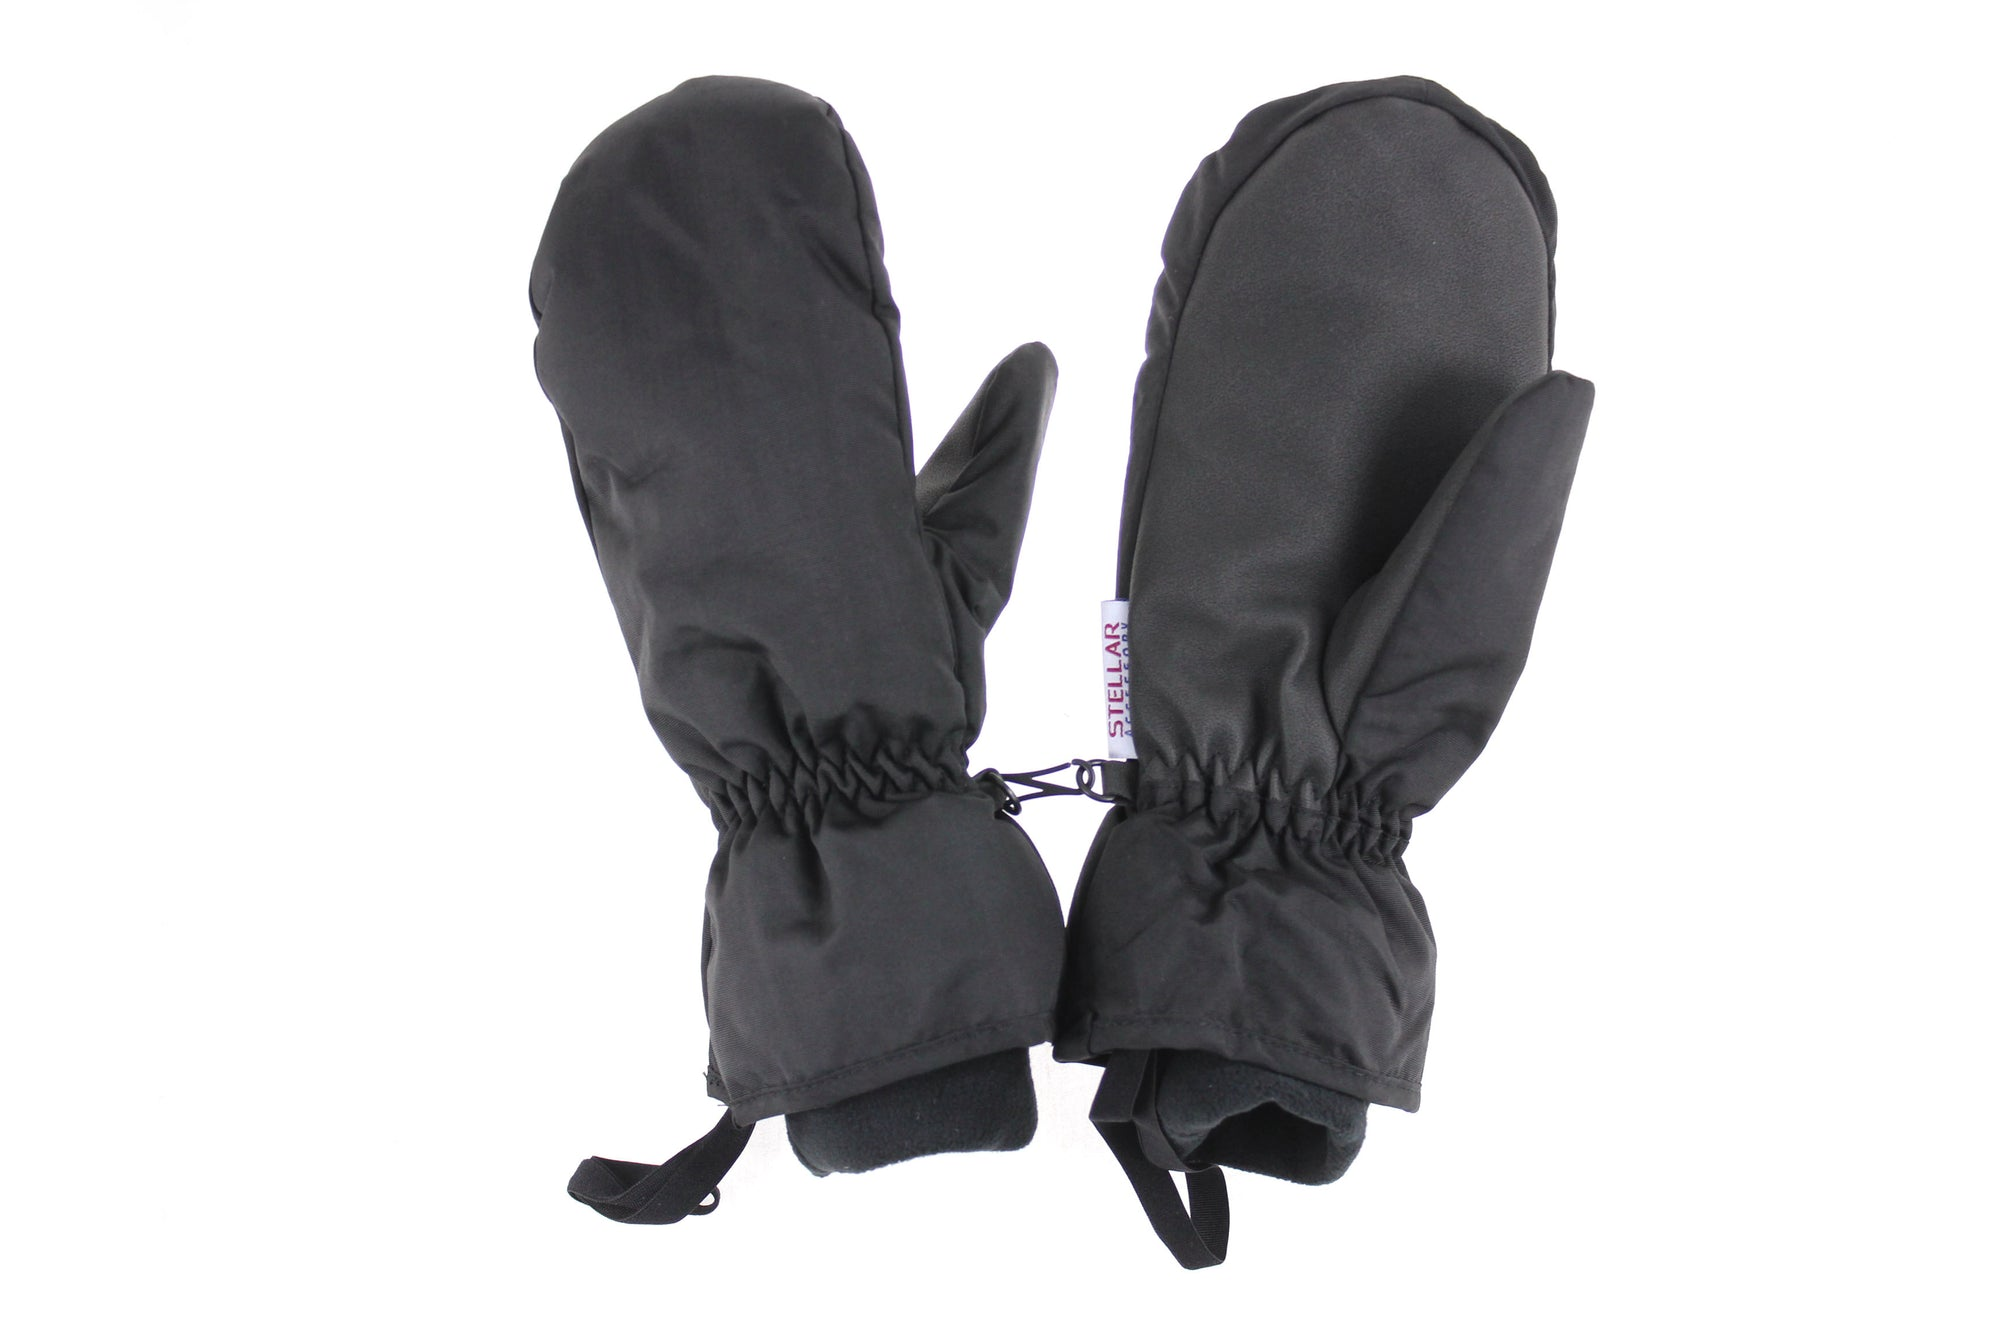 Womens Mittens - Speciment - Womens Snow & Ski Mittens